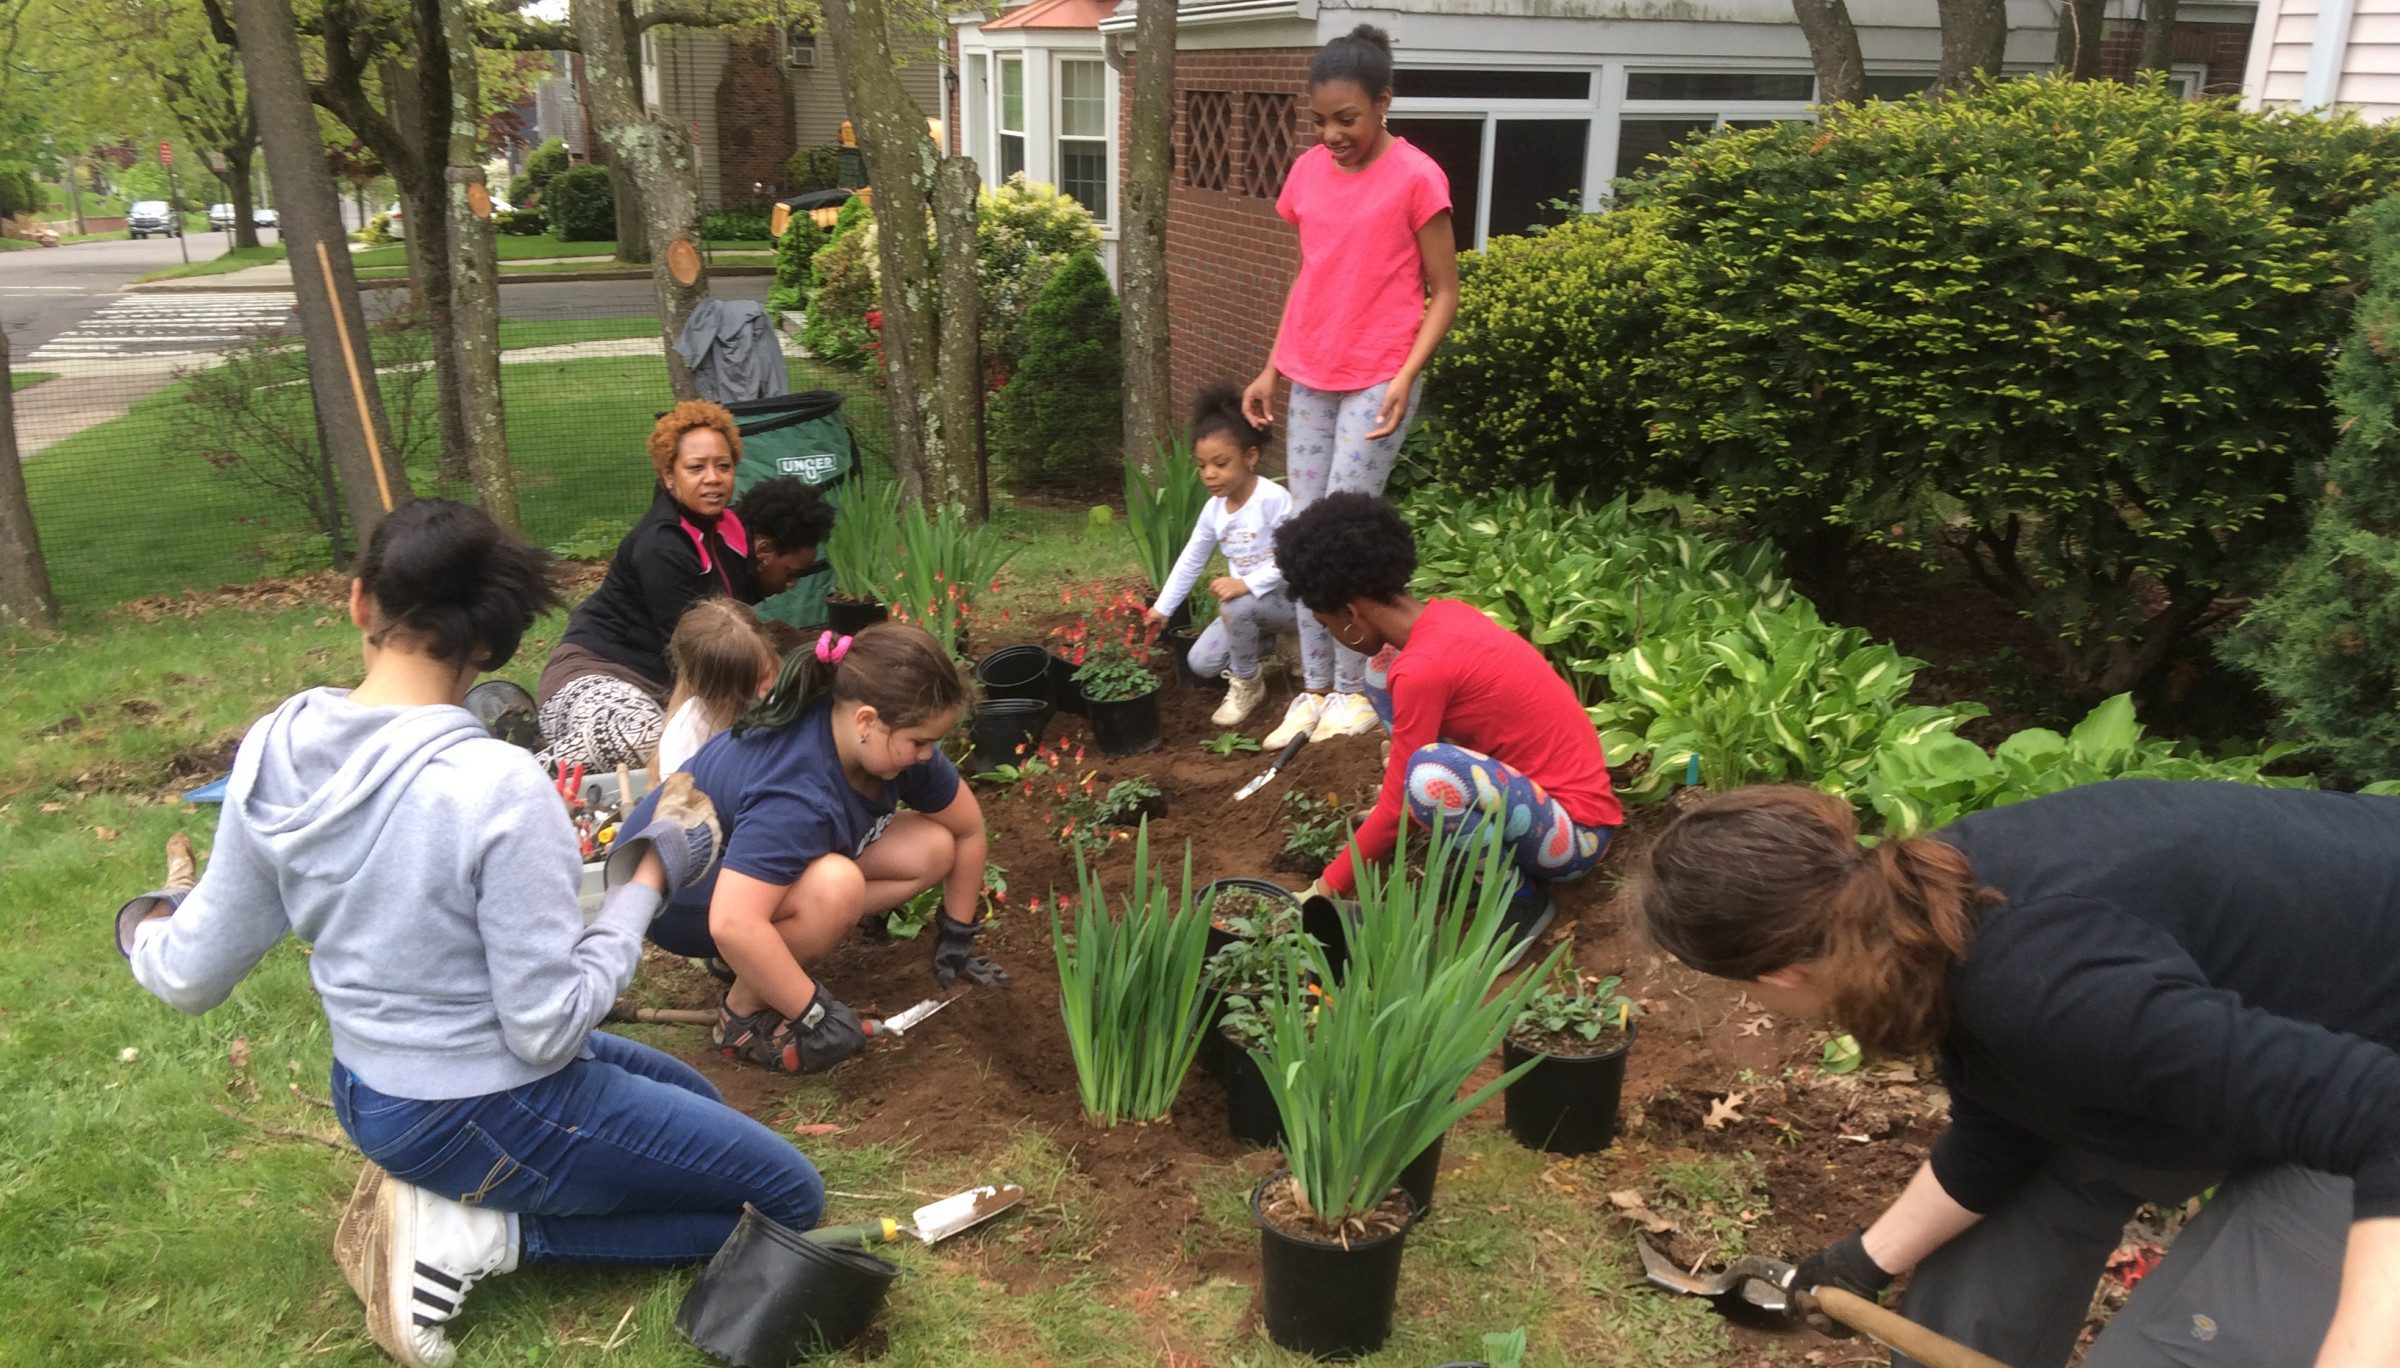 A homeowner and neighbors work to install a rain garden in the Beaver Hills neighborhood of New Haven in 2019.